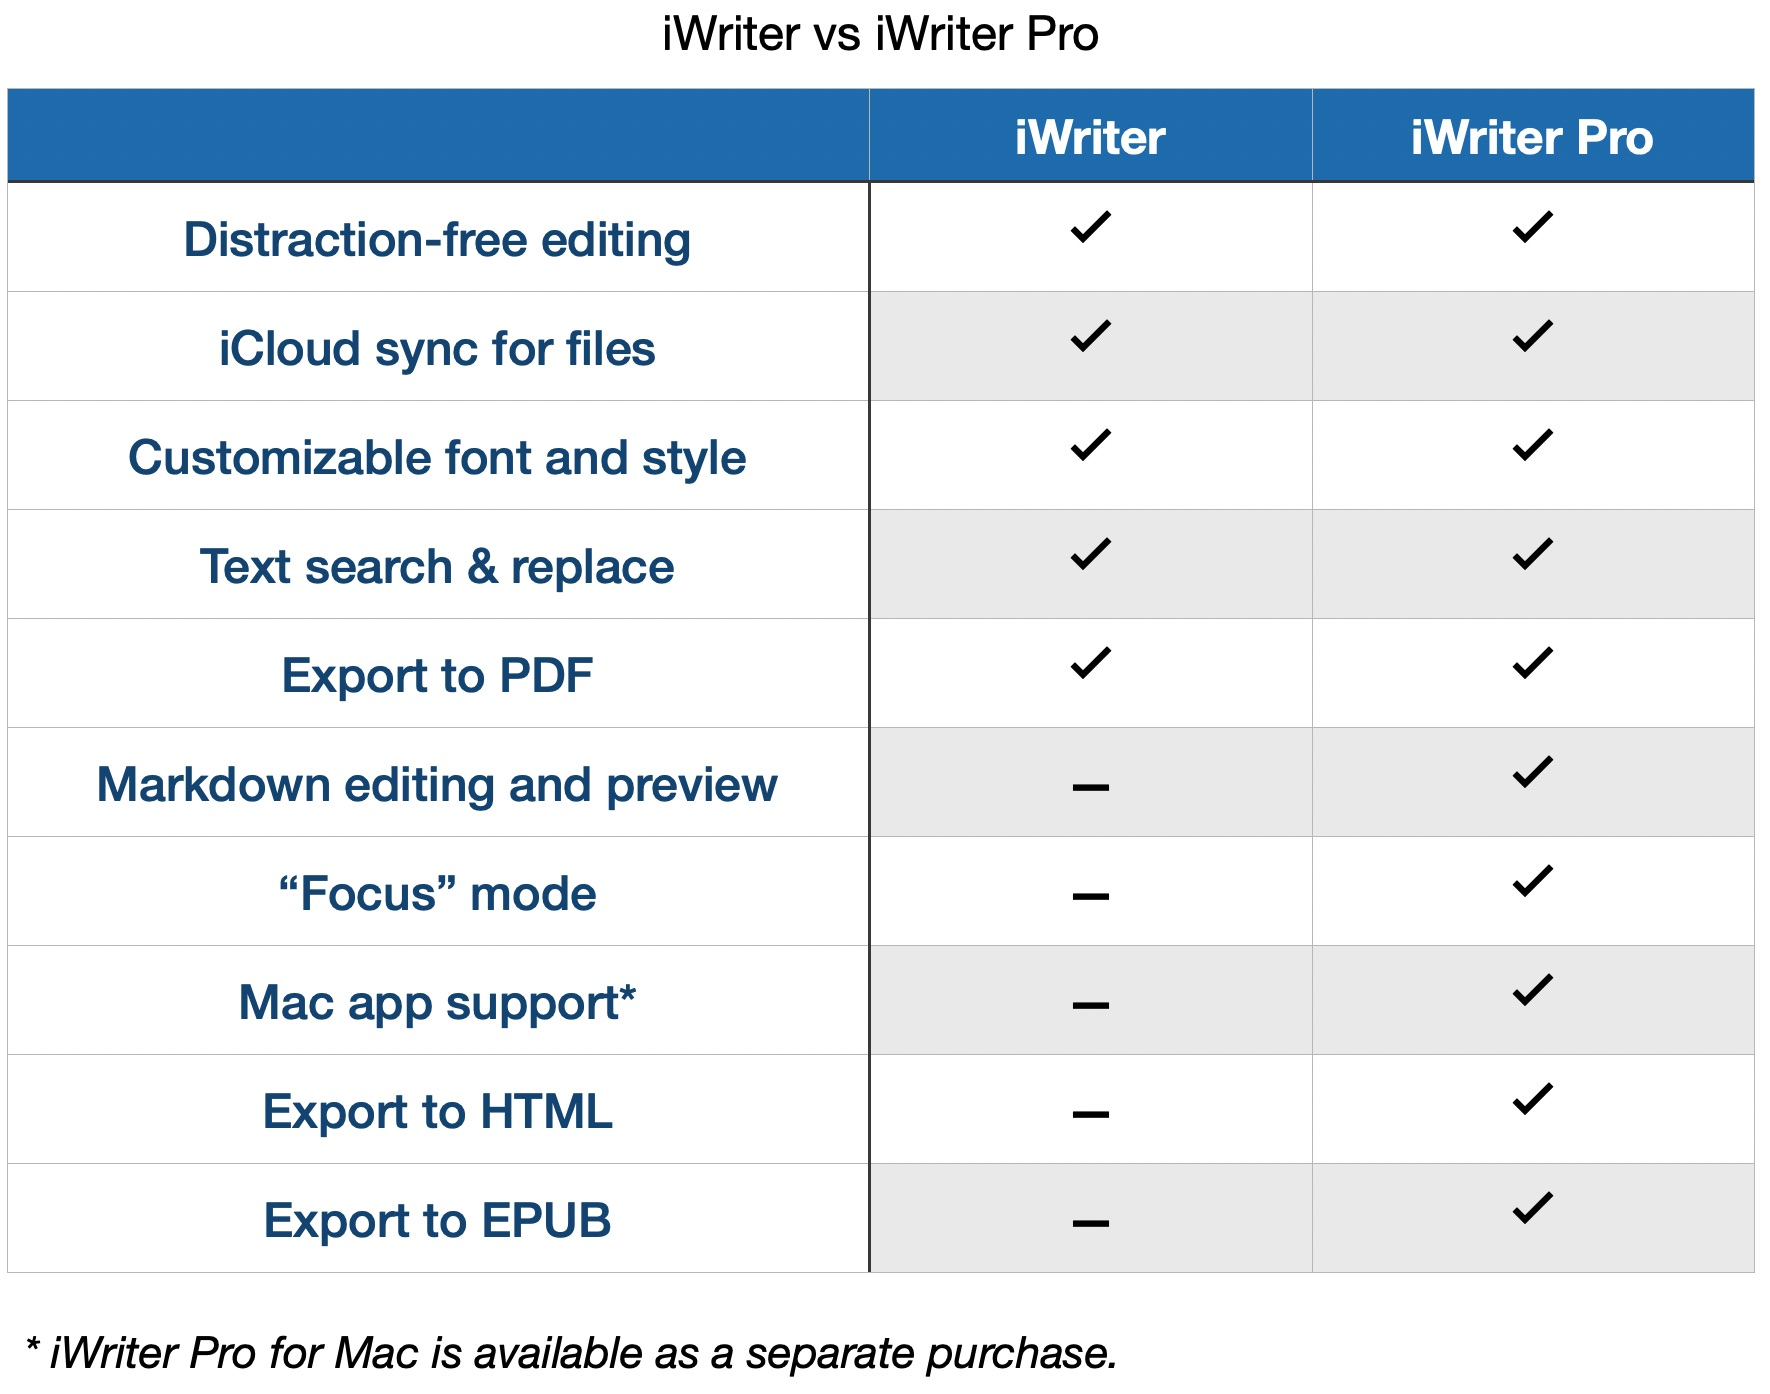 iWriter Pro vs iWriter difference